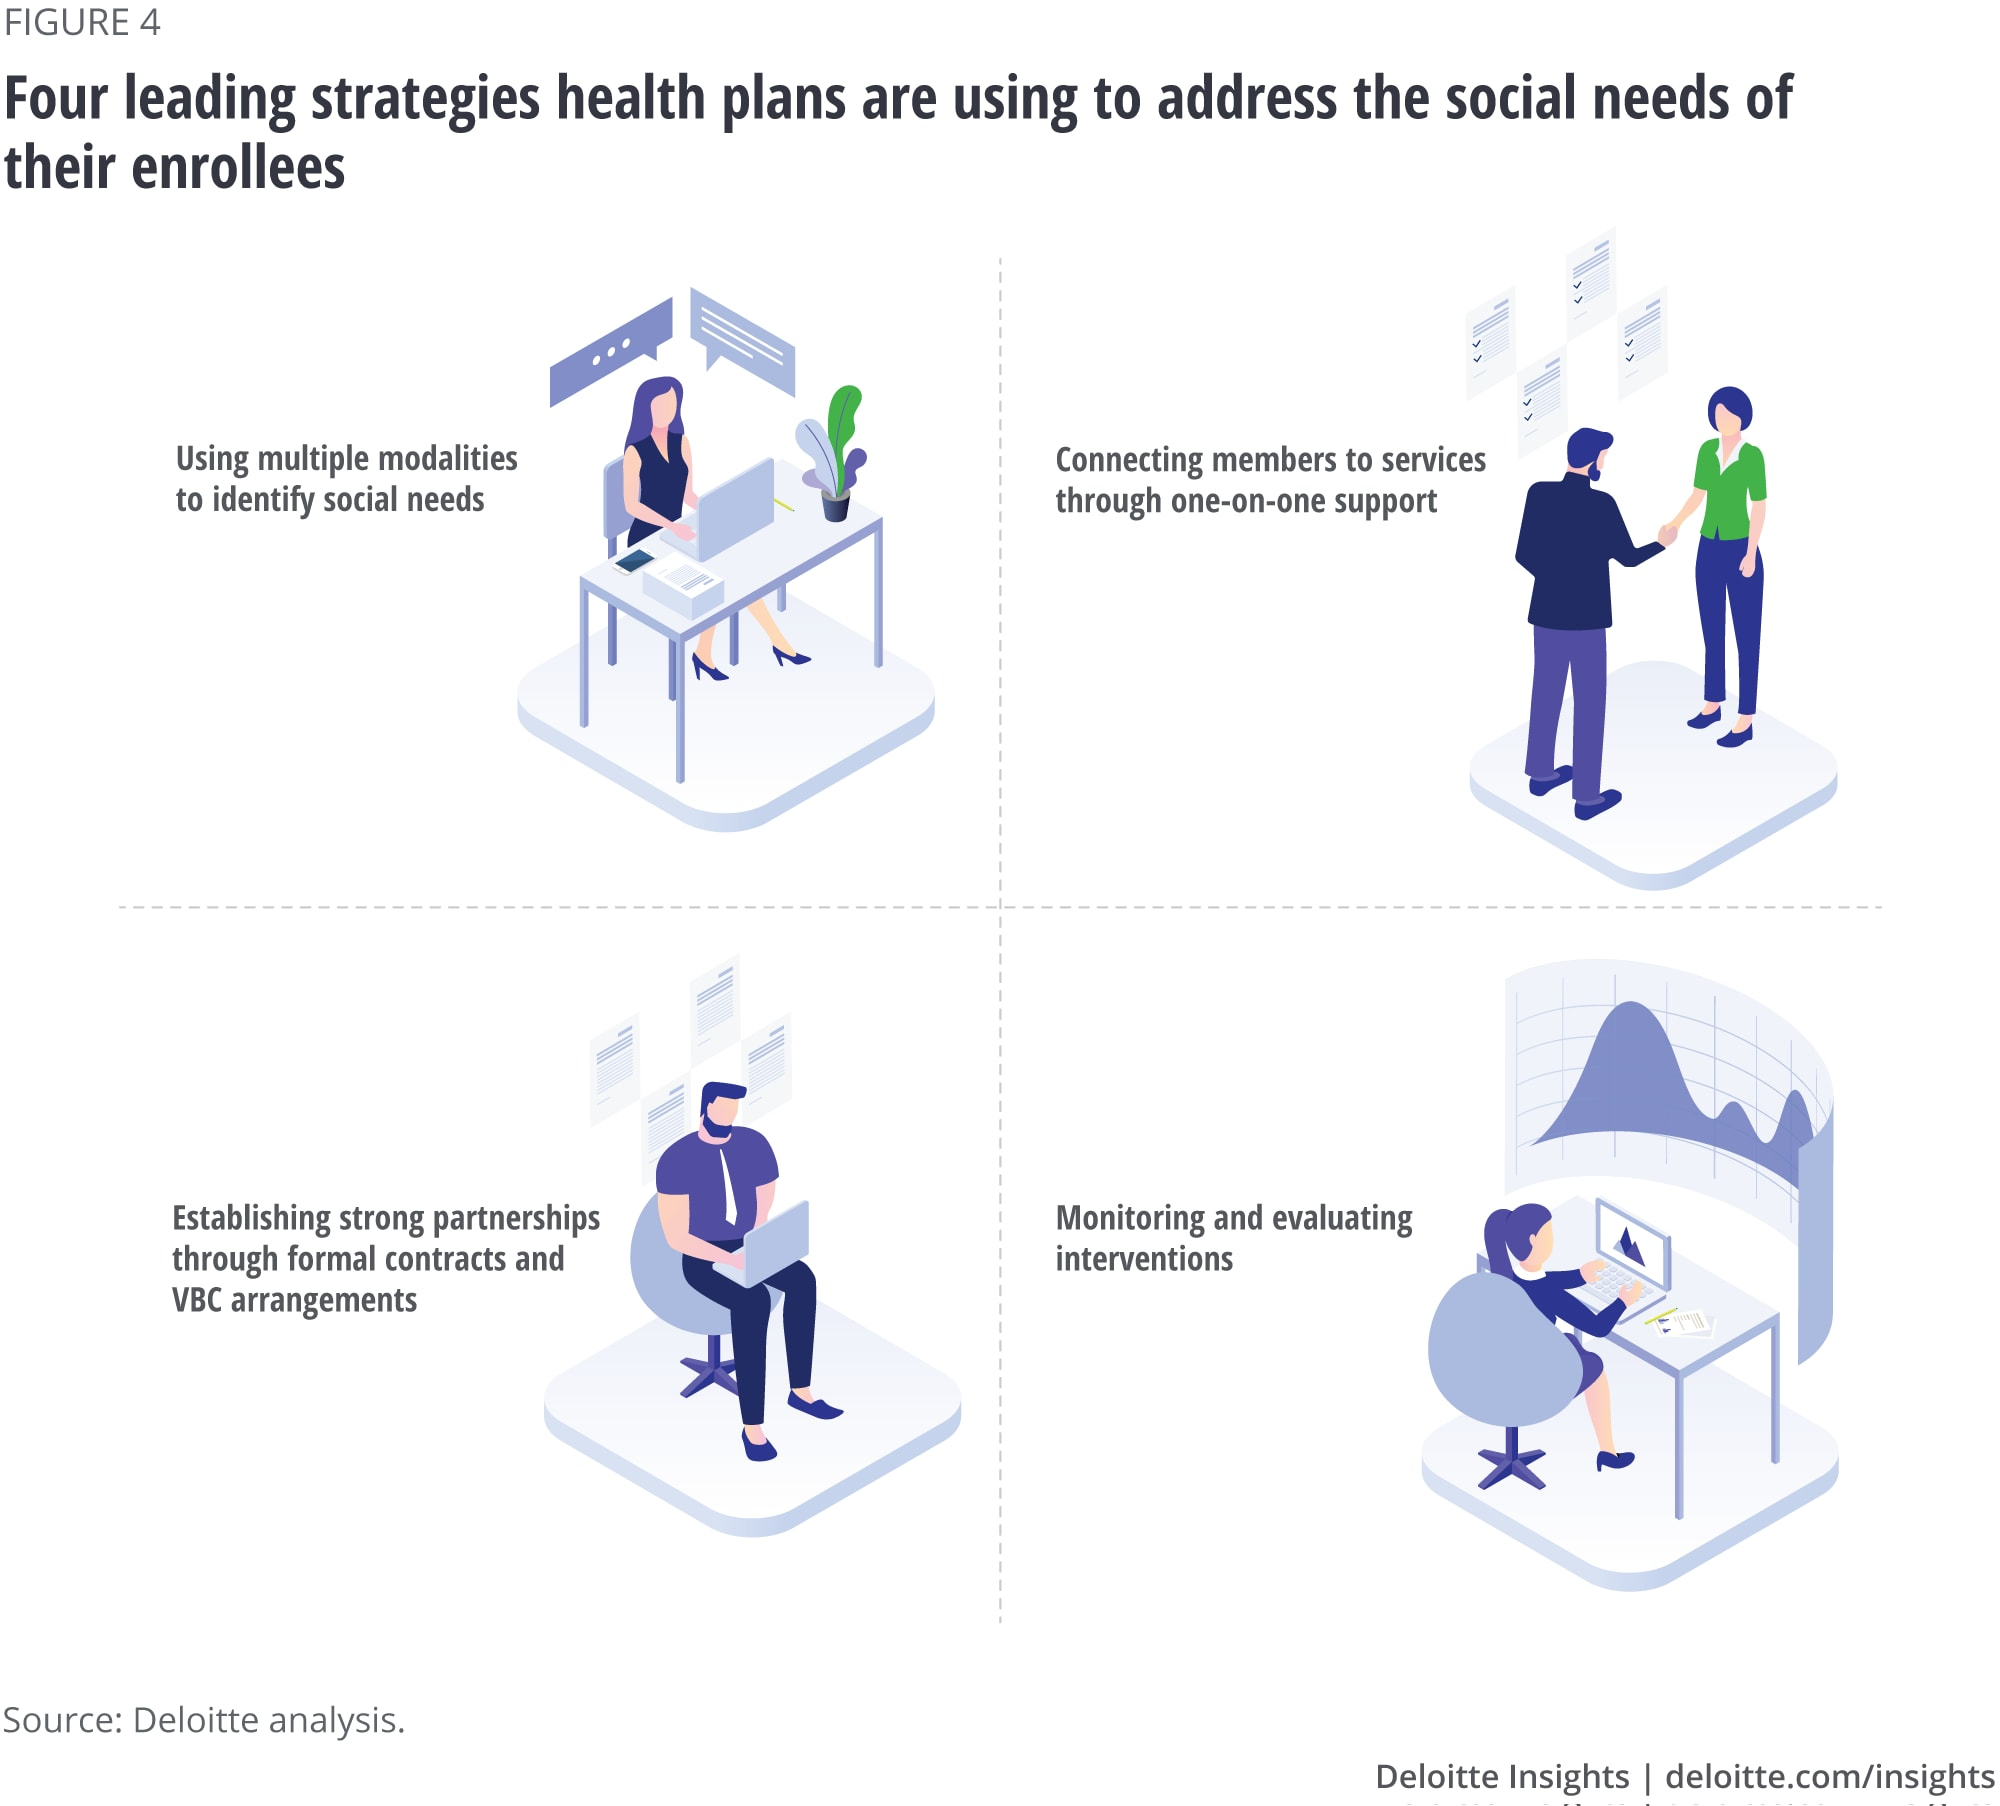 Four leading strategies health plans are using to address the social needs of their enrollees